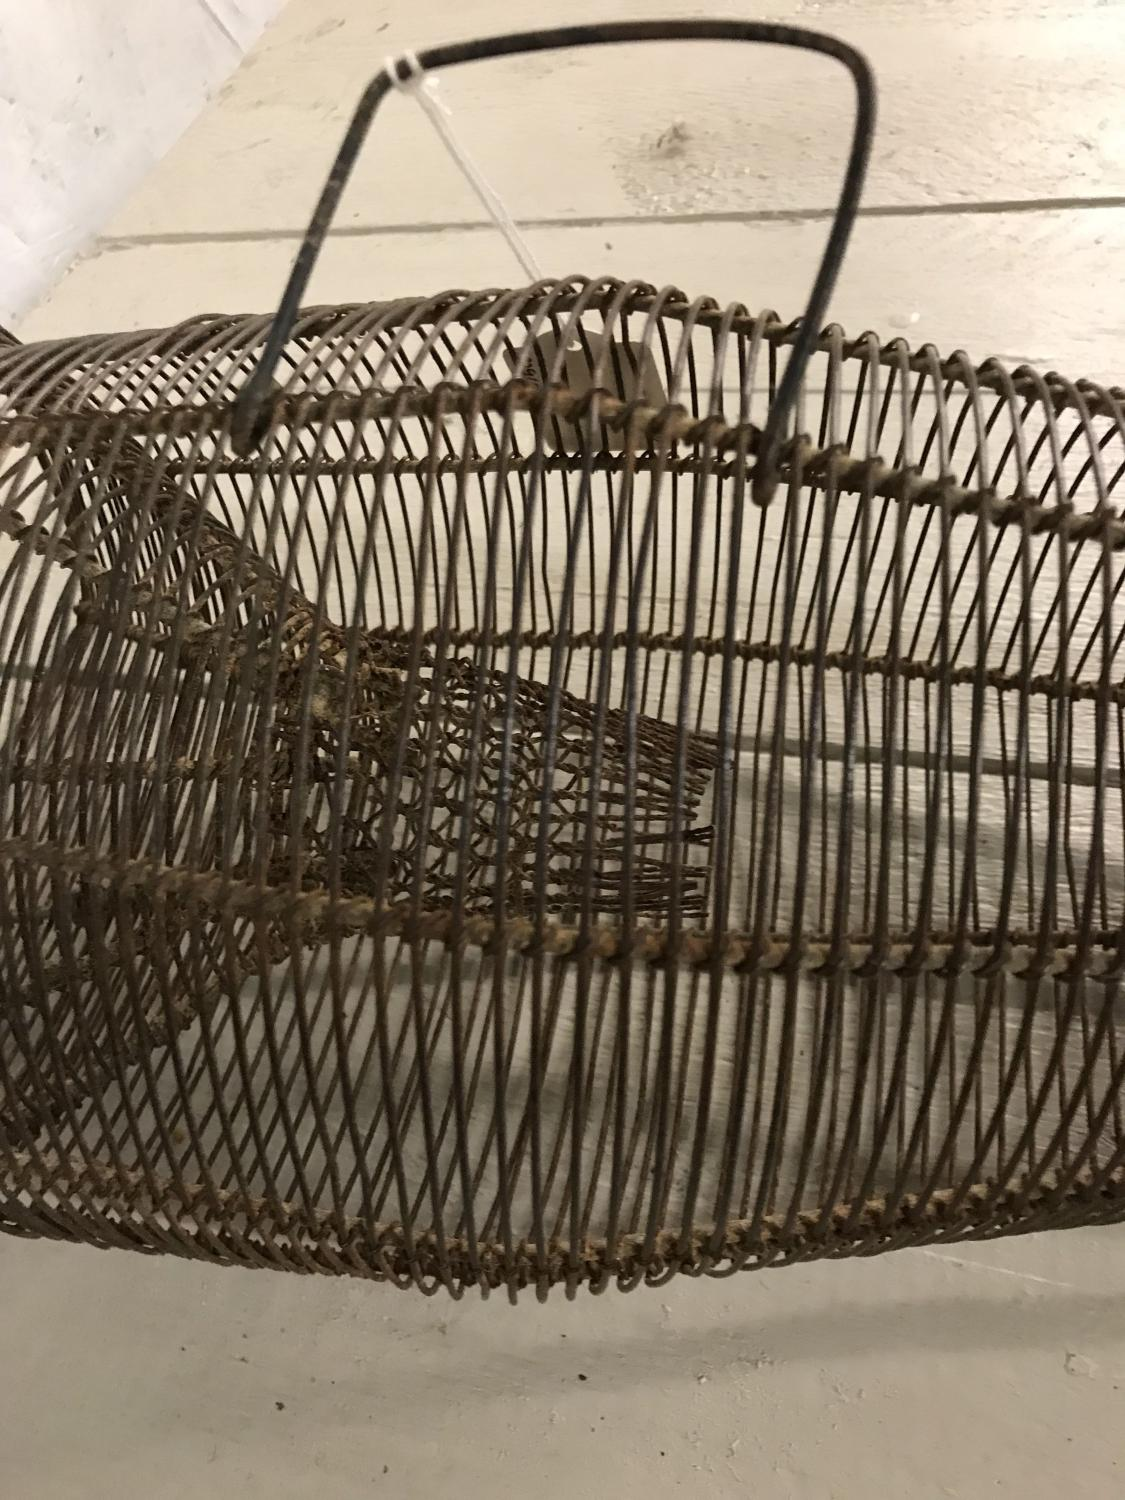 Wirework Fish or Crayfish Trap